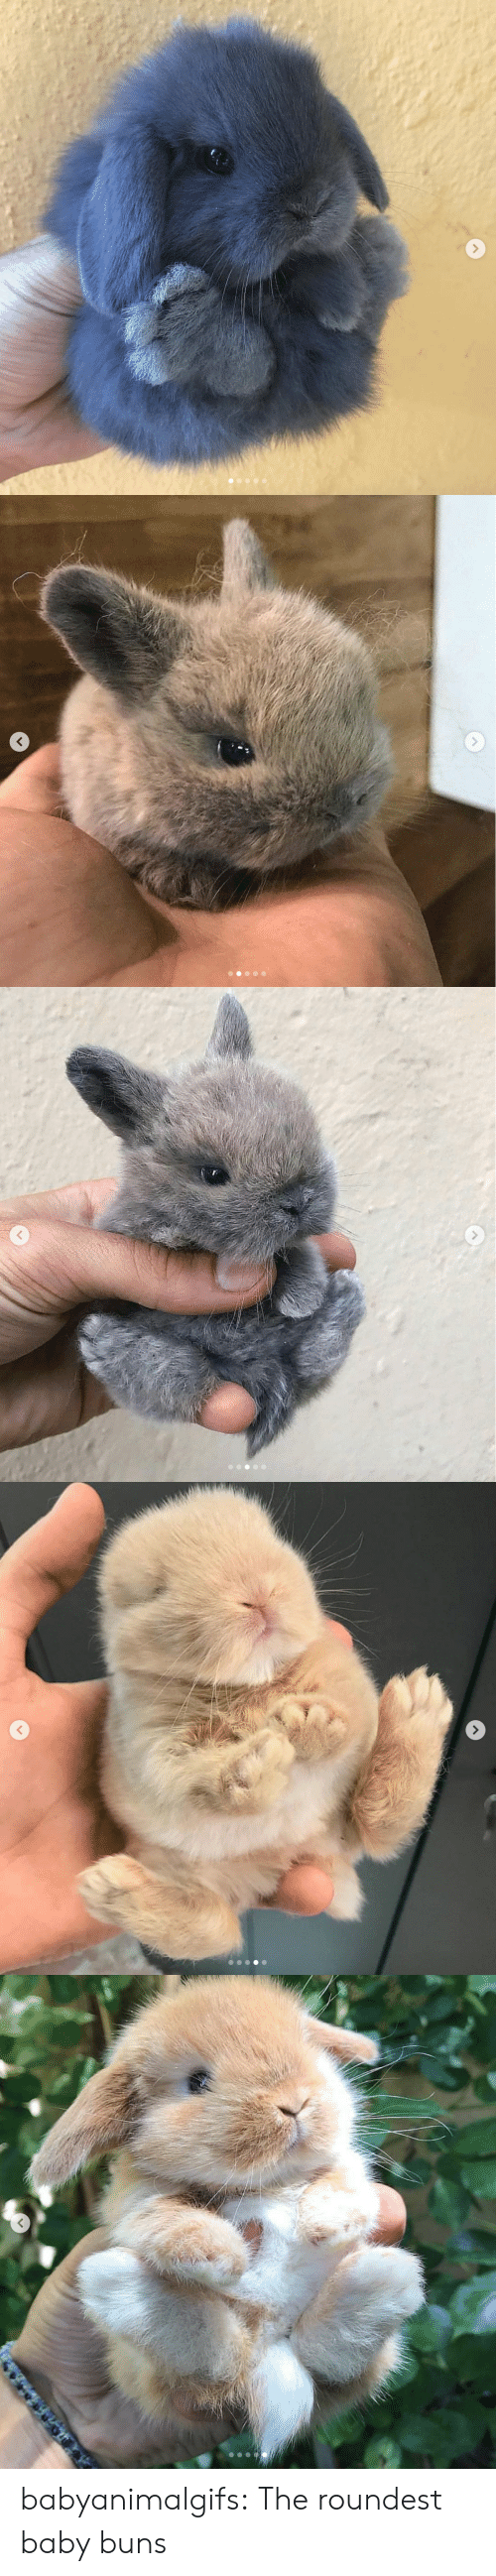 Tumblr, Blog, and Baby: babyanimalgifs:  The roundest baby buns